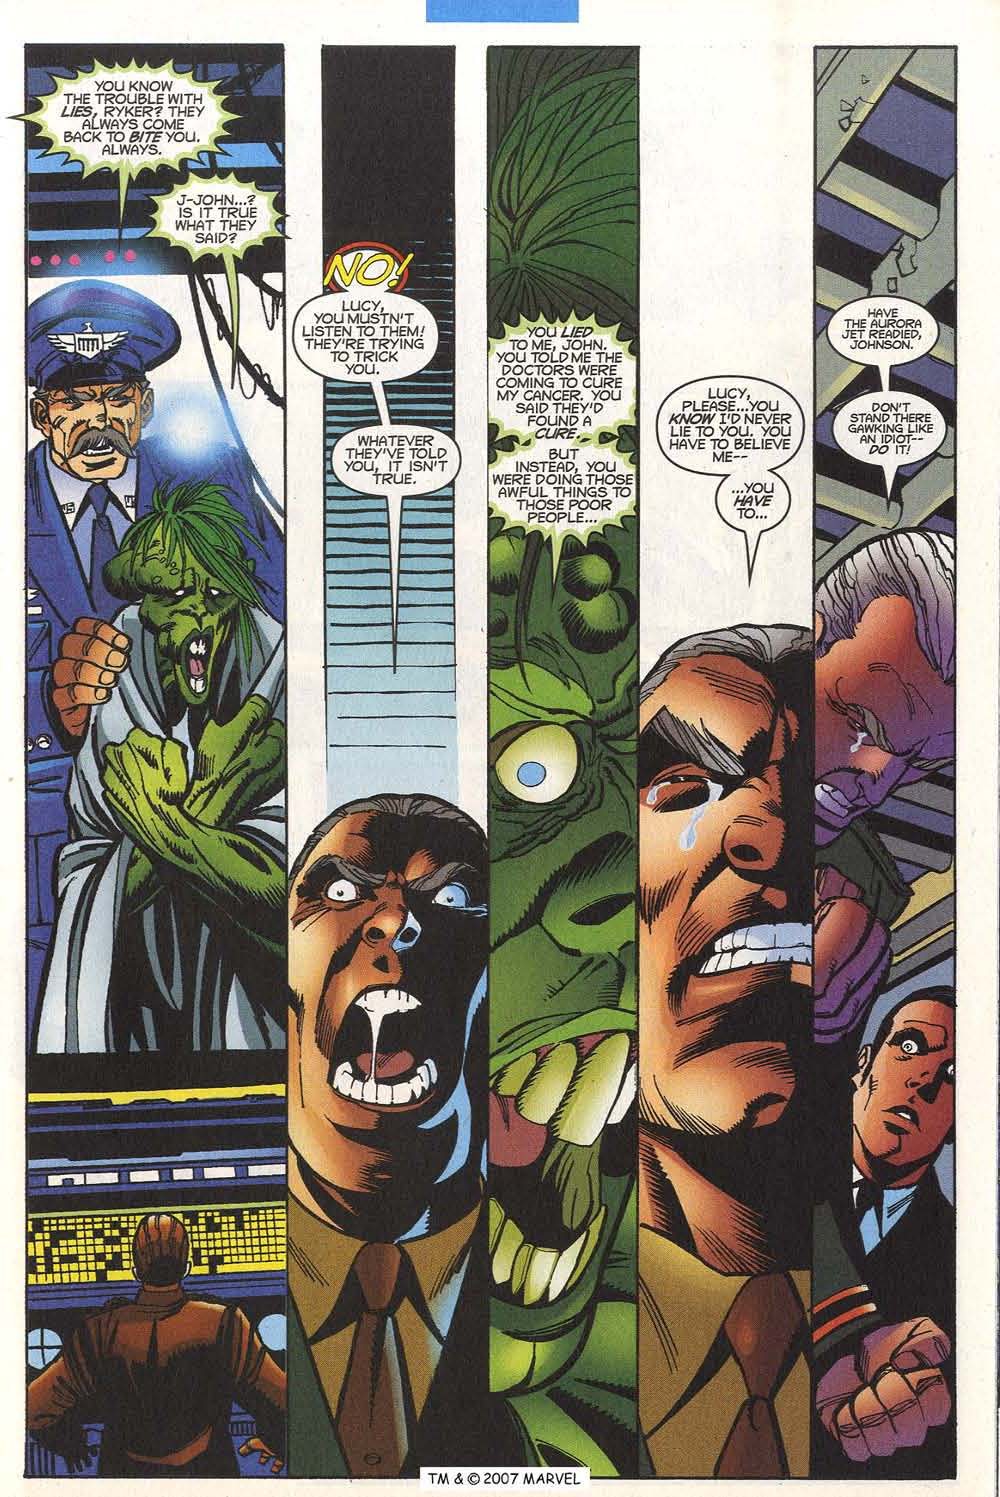 Read online The Incredible Hulk (2000) comic -  Issue #20 - 29